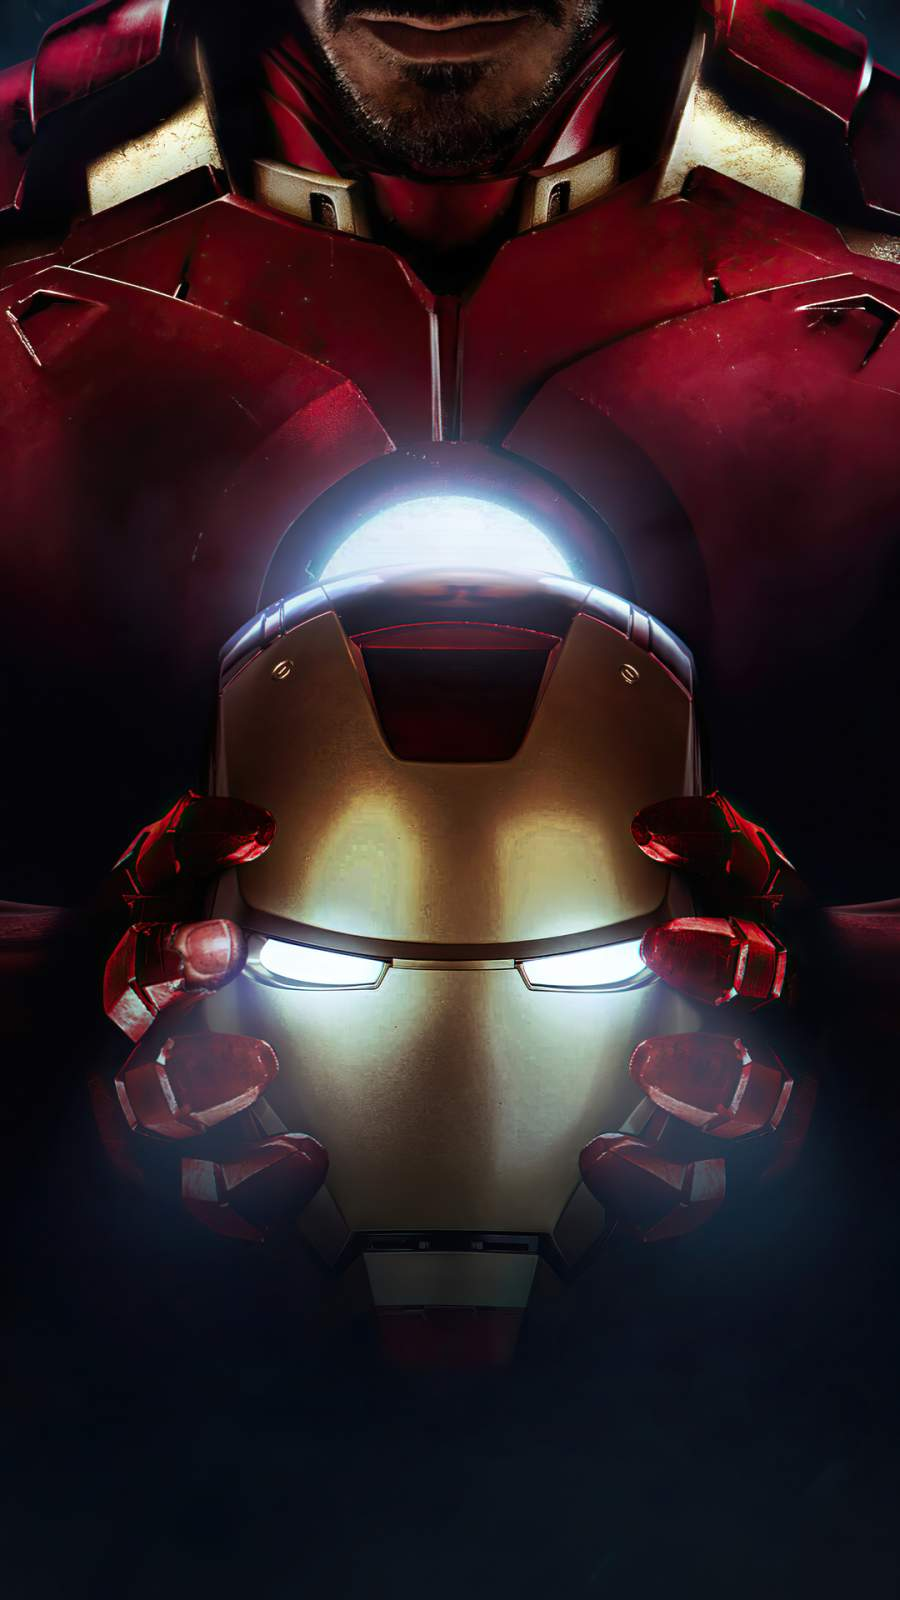 The Iron Man Tony Stark